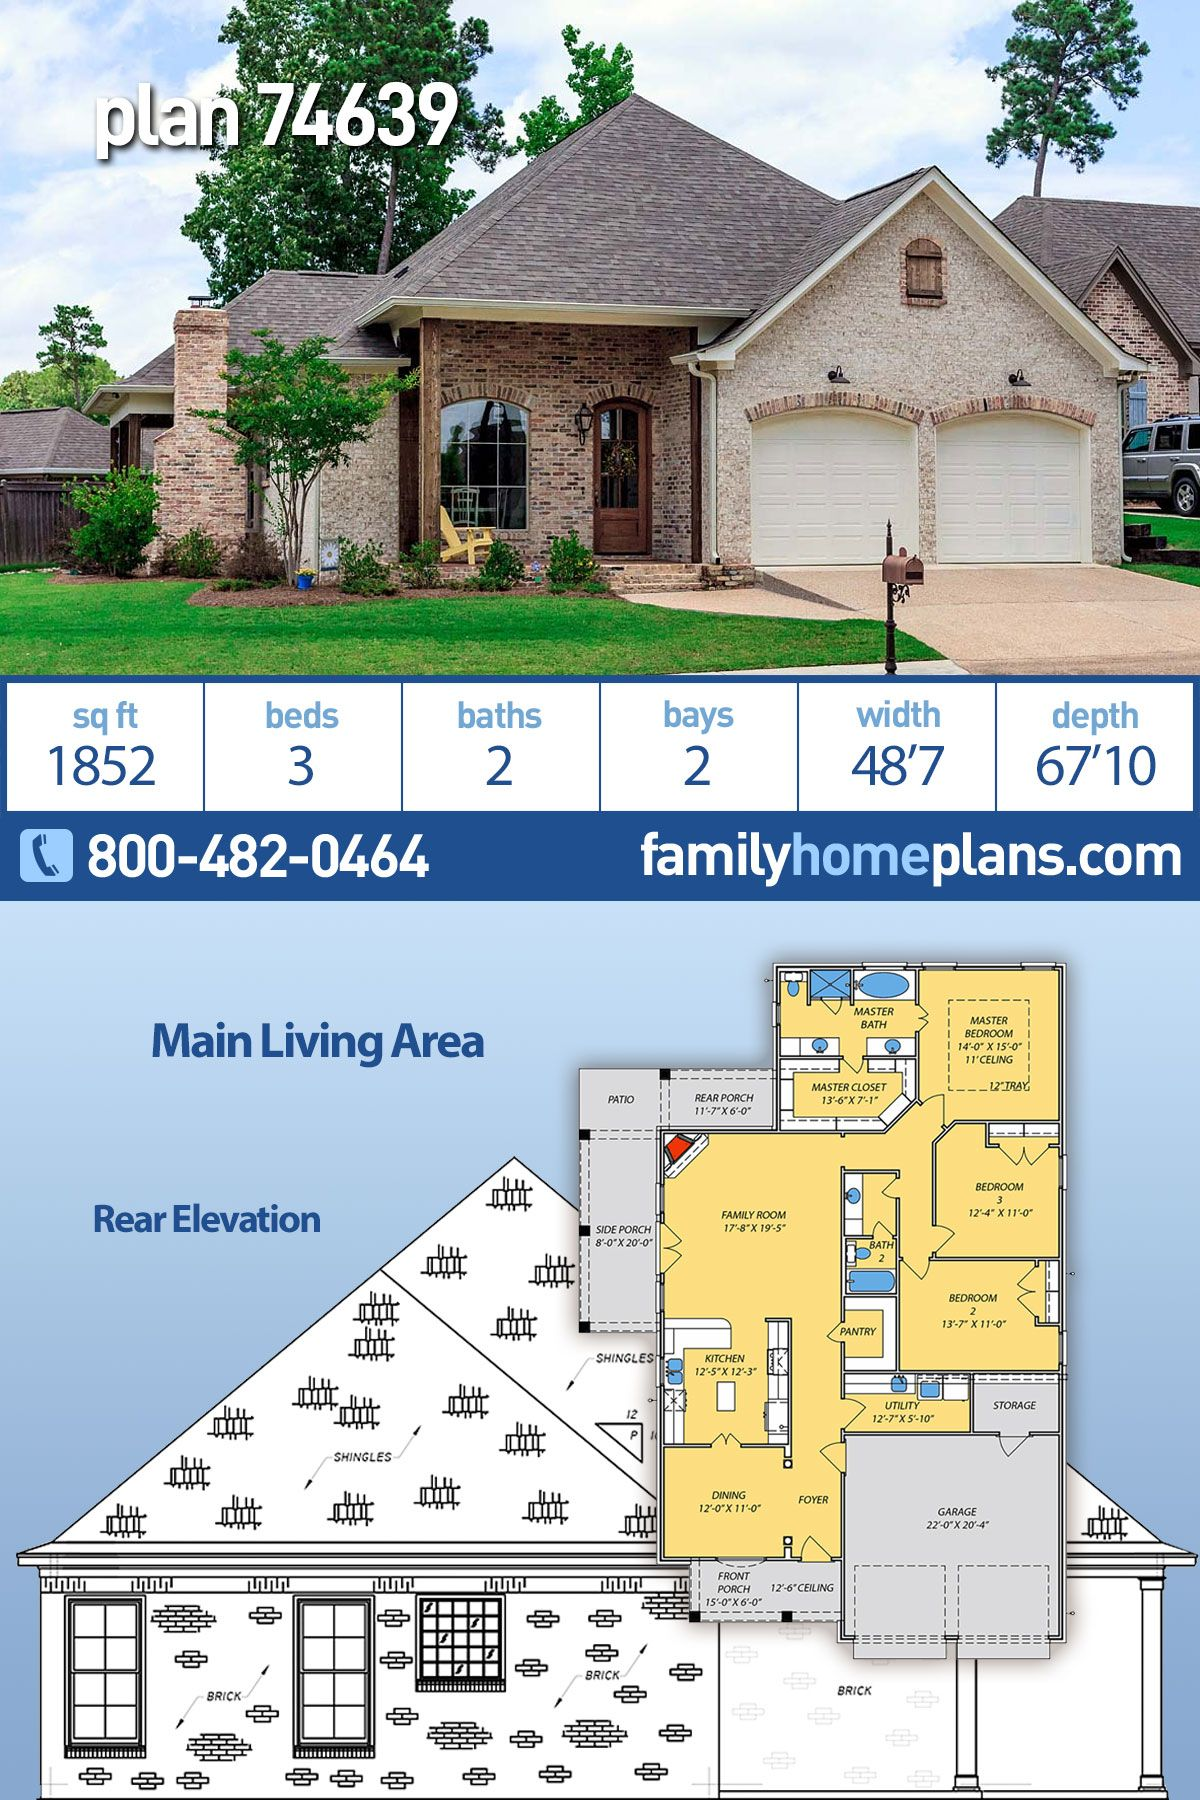 Traditional Style House Plan 74639 With 3 Bed 2 Bath 2 Car Garage In 2020 House Plans Ranch Style House Plans Acadian House Plans